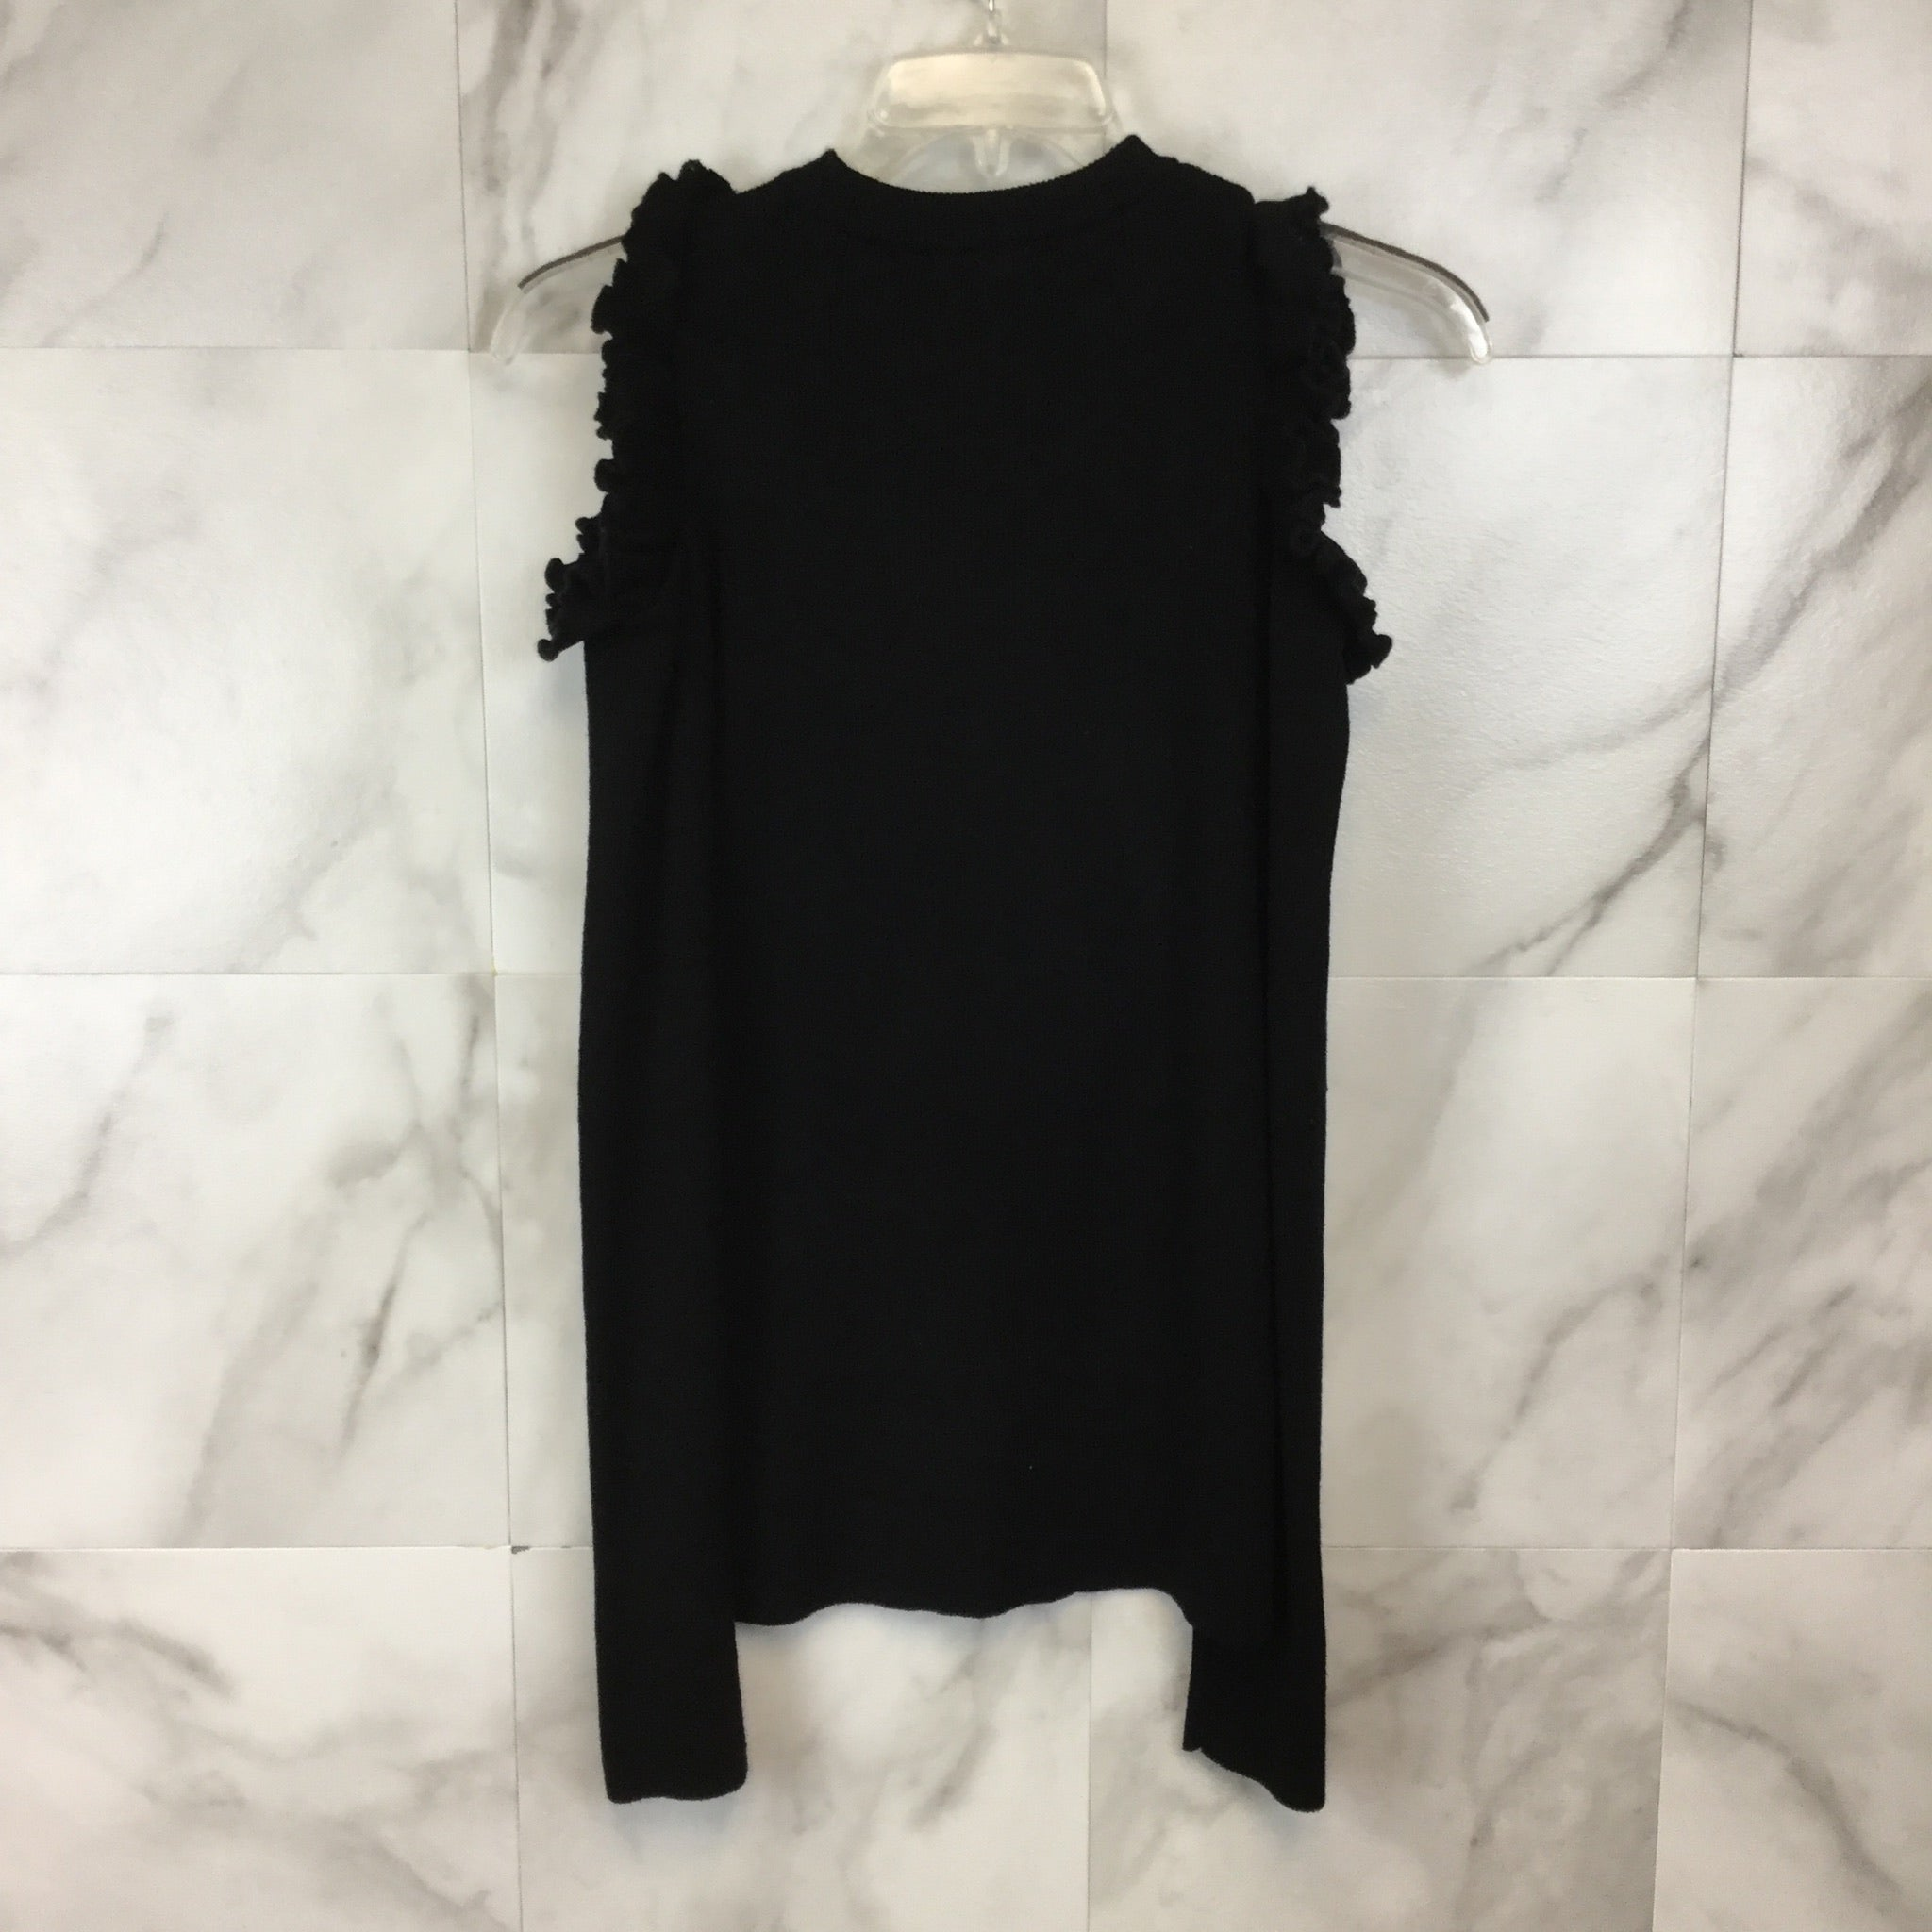 Saks Fifth Avenue Ruffle Cold Shoulder Sweater - Size S